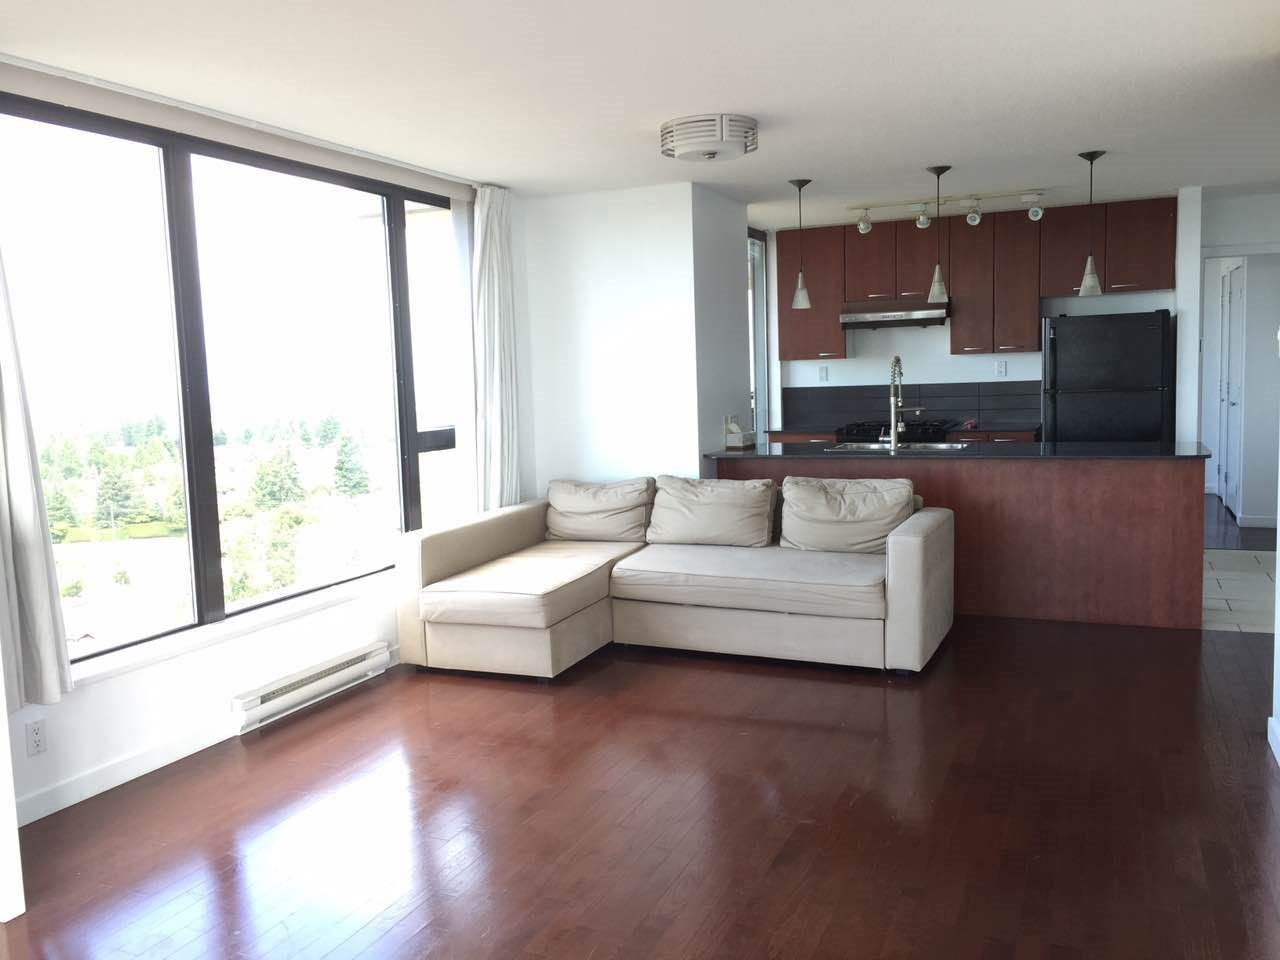 Condo Apartment at 1802 7108 COLLIER STREET, Unit 1802, Burnaby South, British Columbia. Image 7